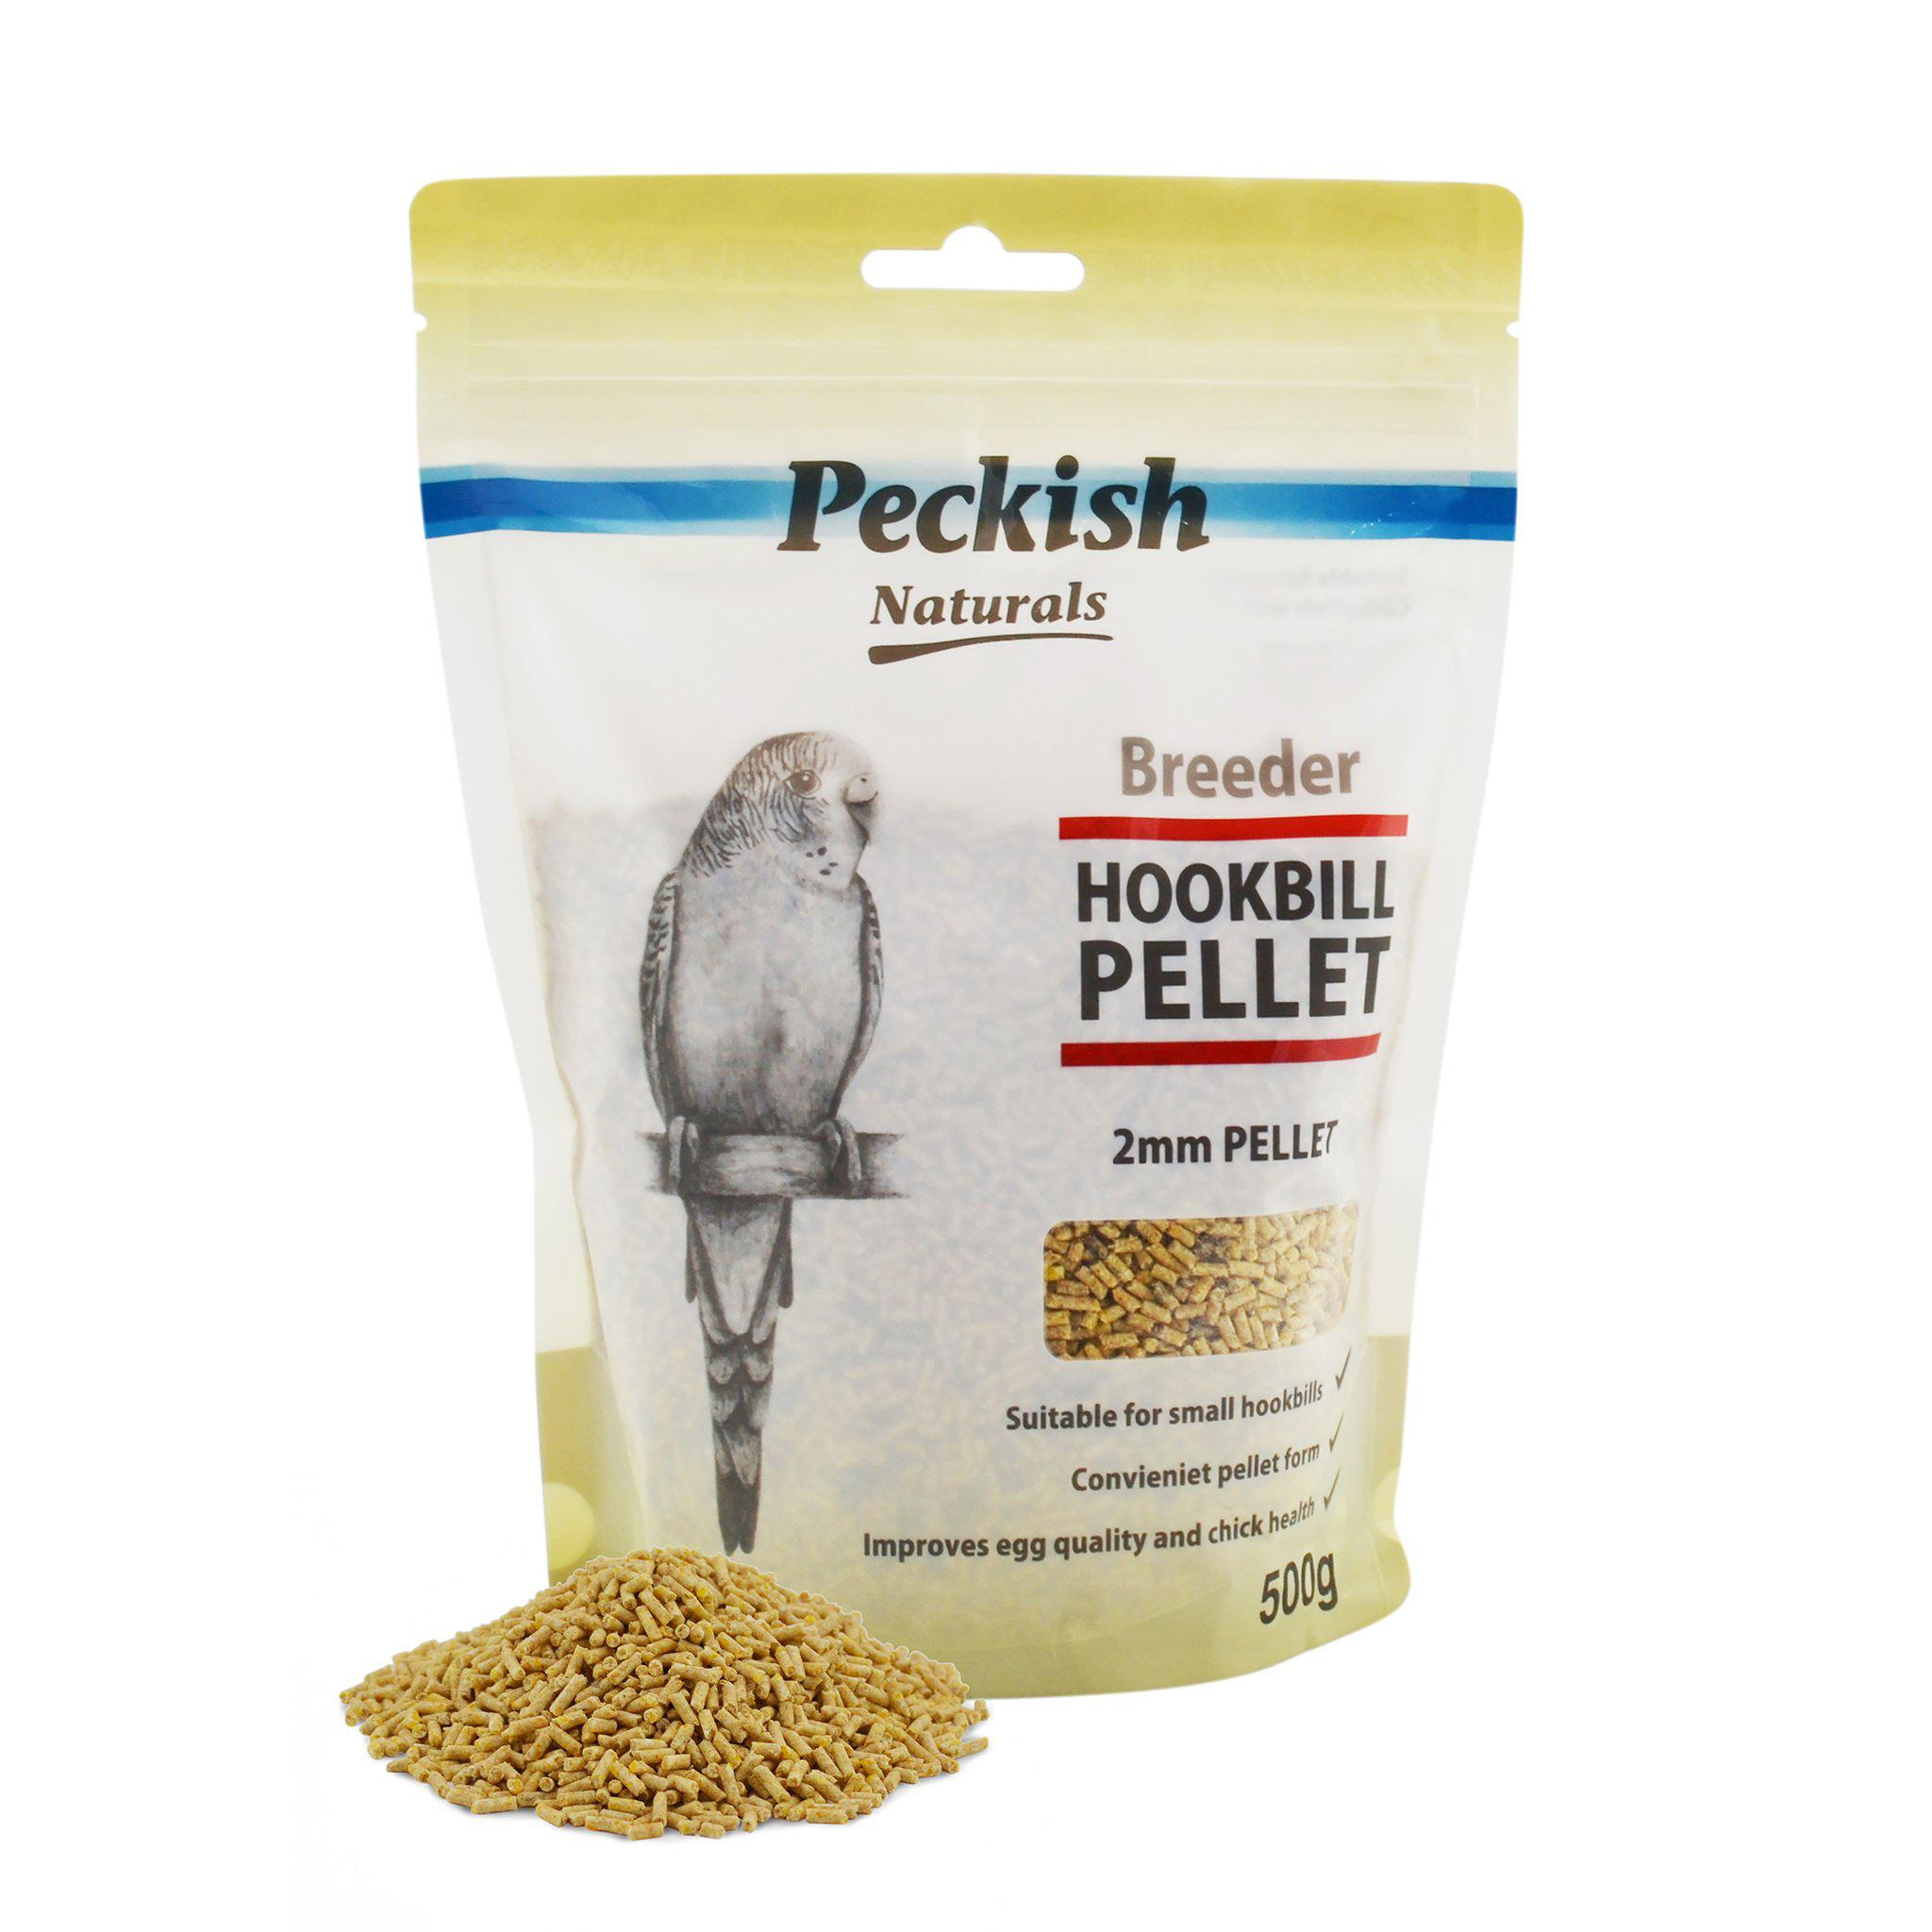 Peckish Naturals Breeder Hookbill 2mm Pellet - Small - comfypet